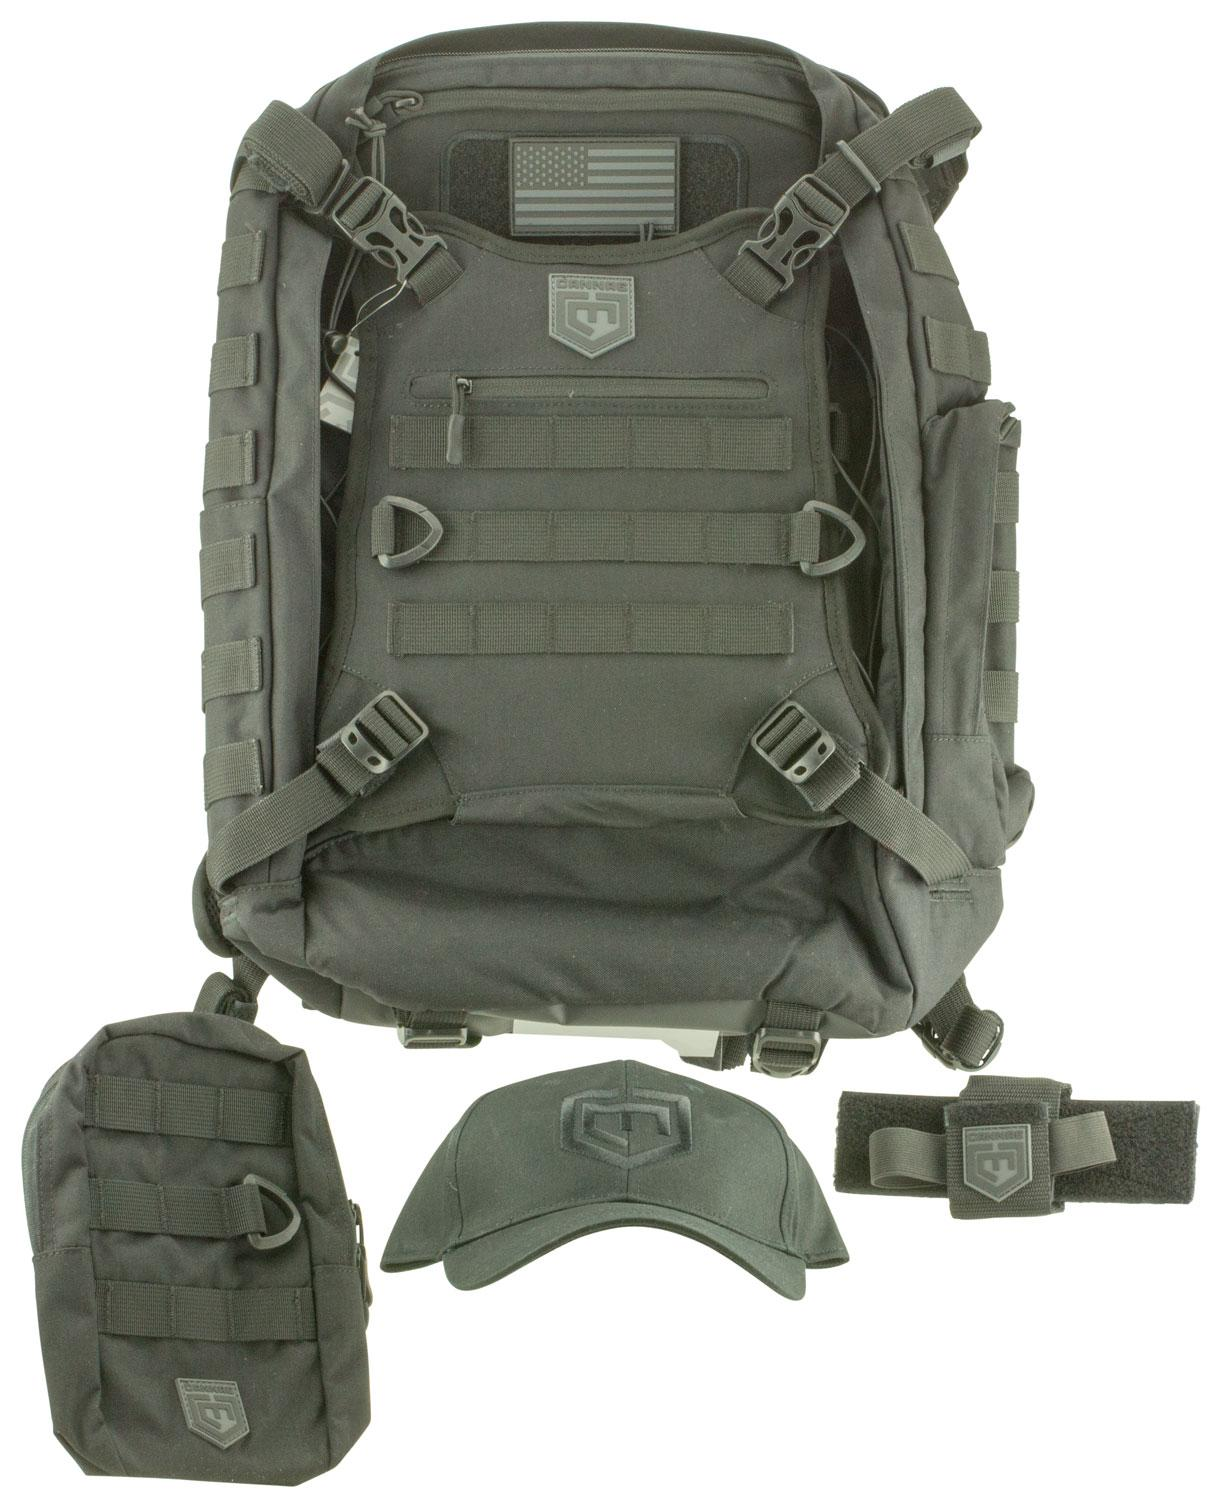 Cannae Pro Gear Tactical Backpack